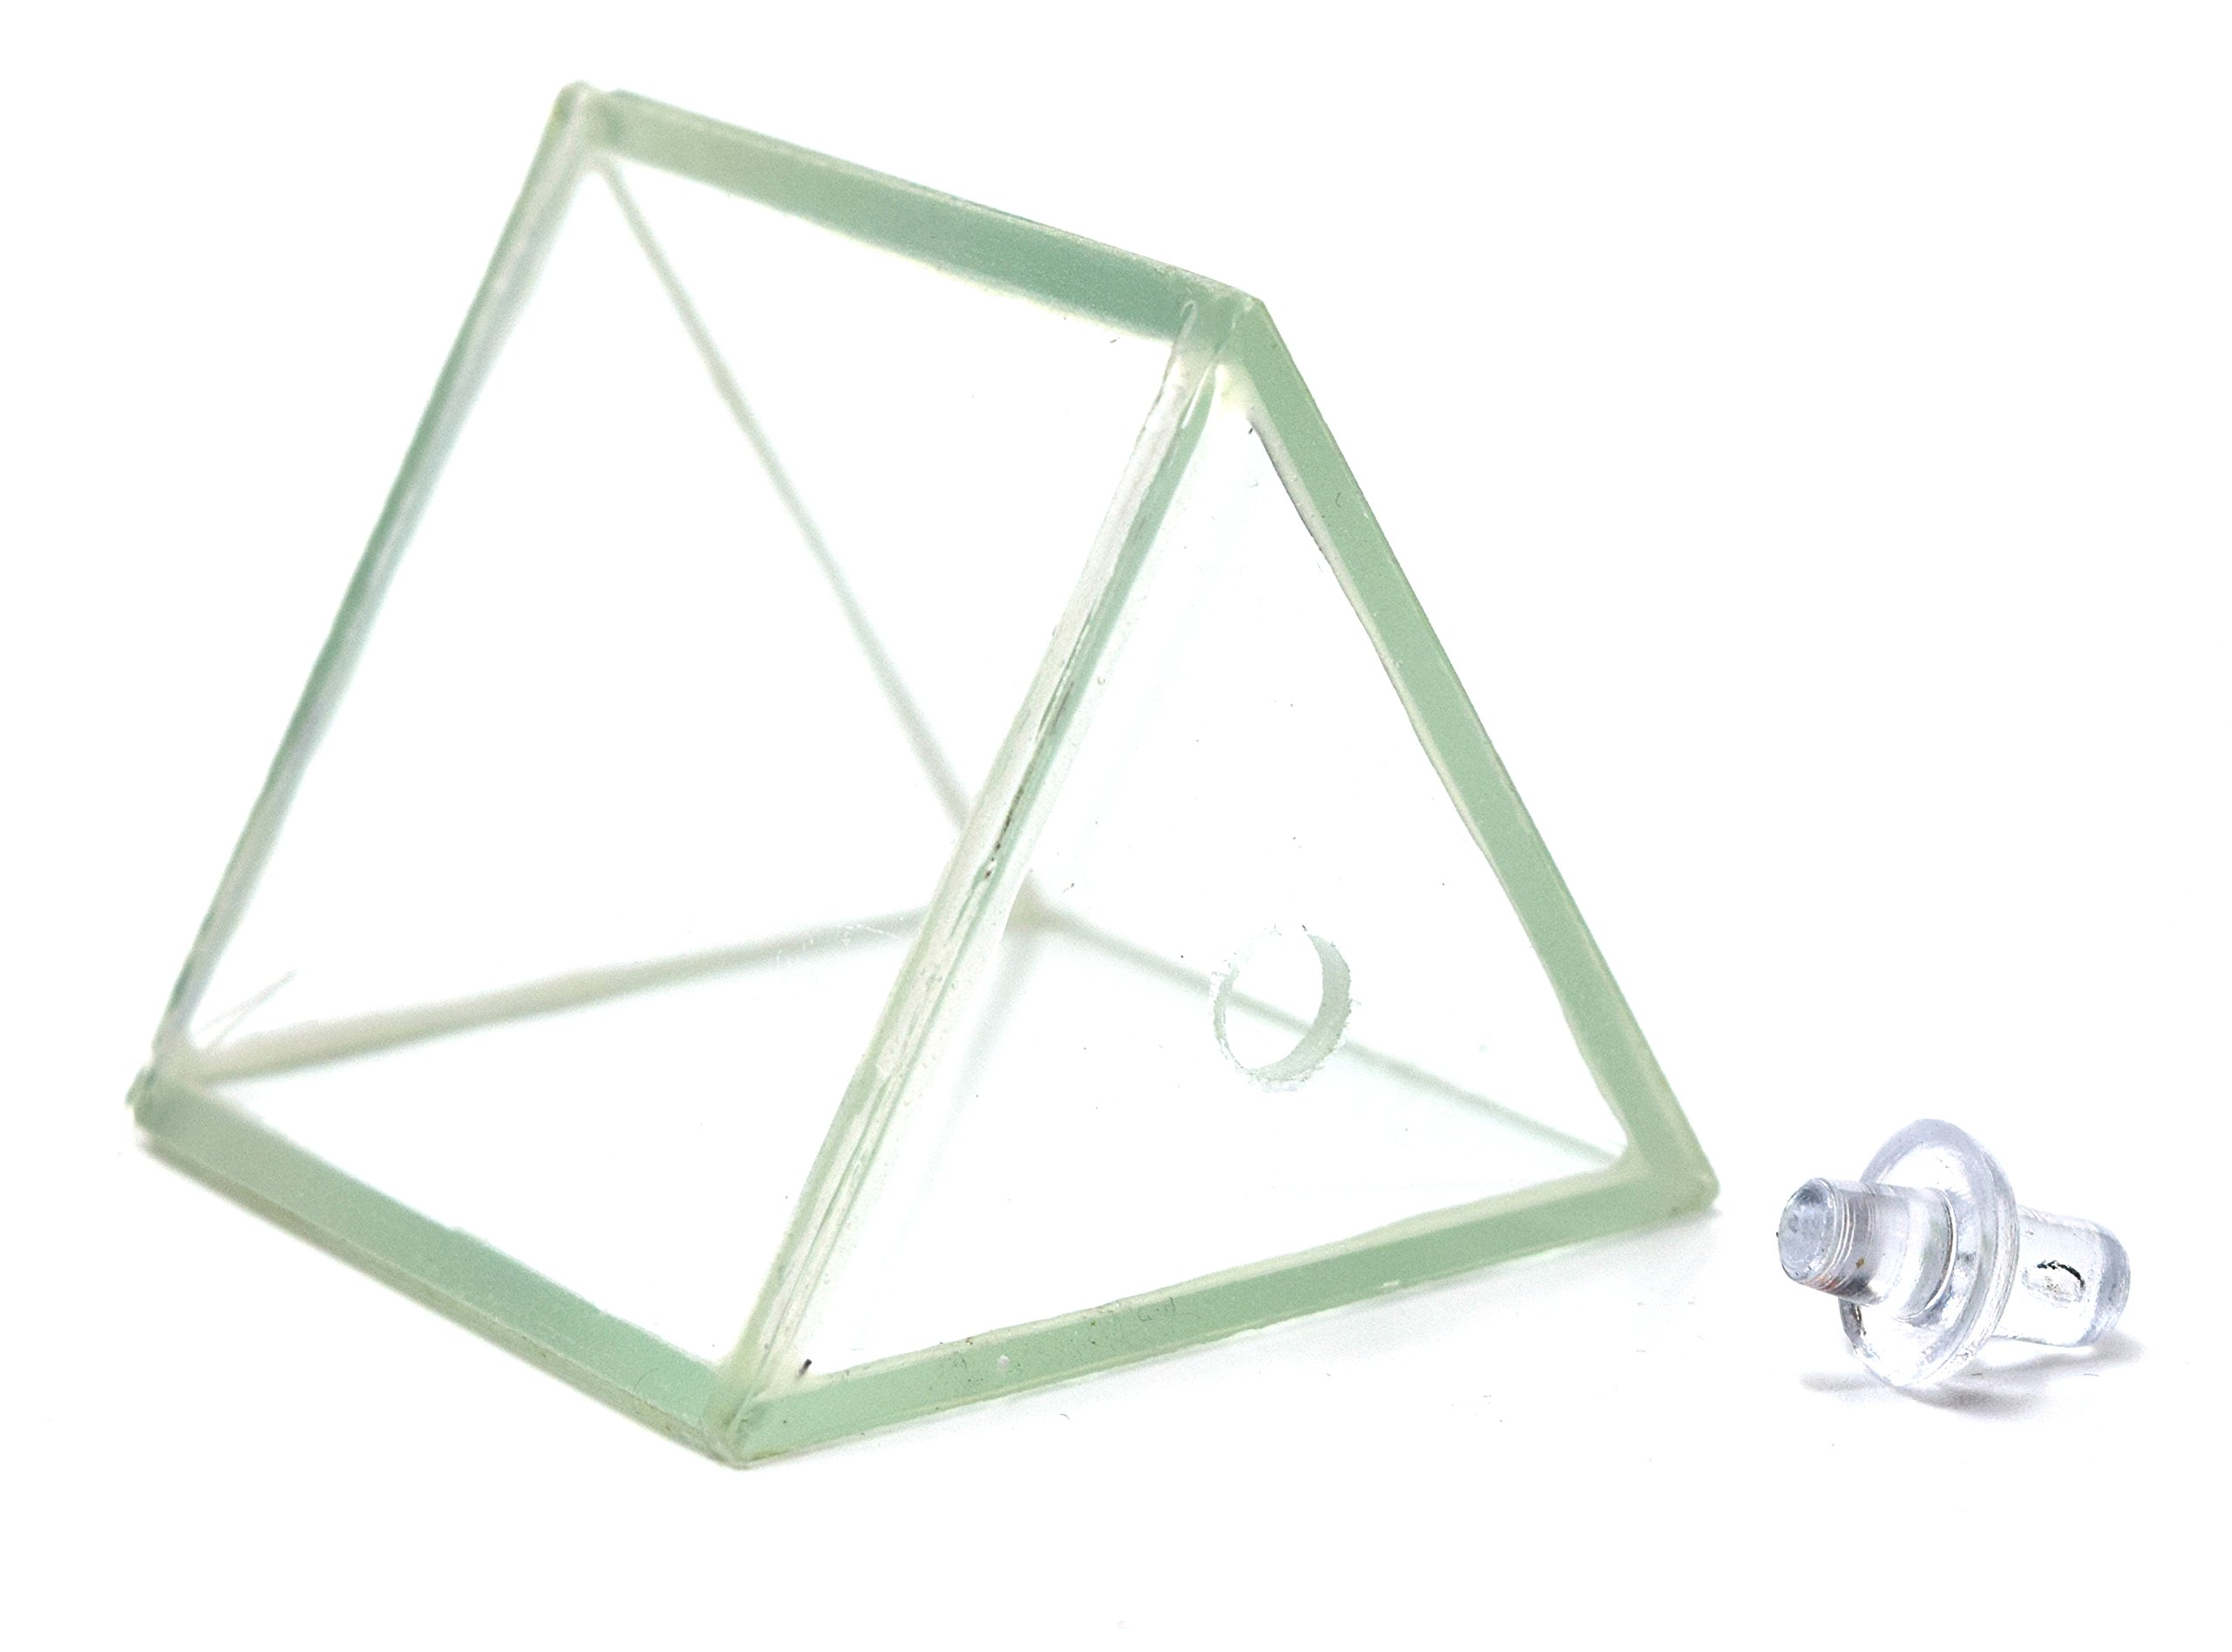 Hollow Glass Prism, with Stopper, Size 2'' x 2'' (50x50 mm) - Great for Studying Snells Law of Refraction - Eisco Labs